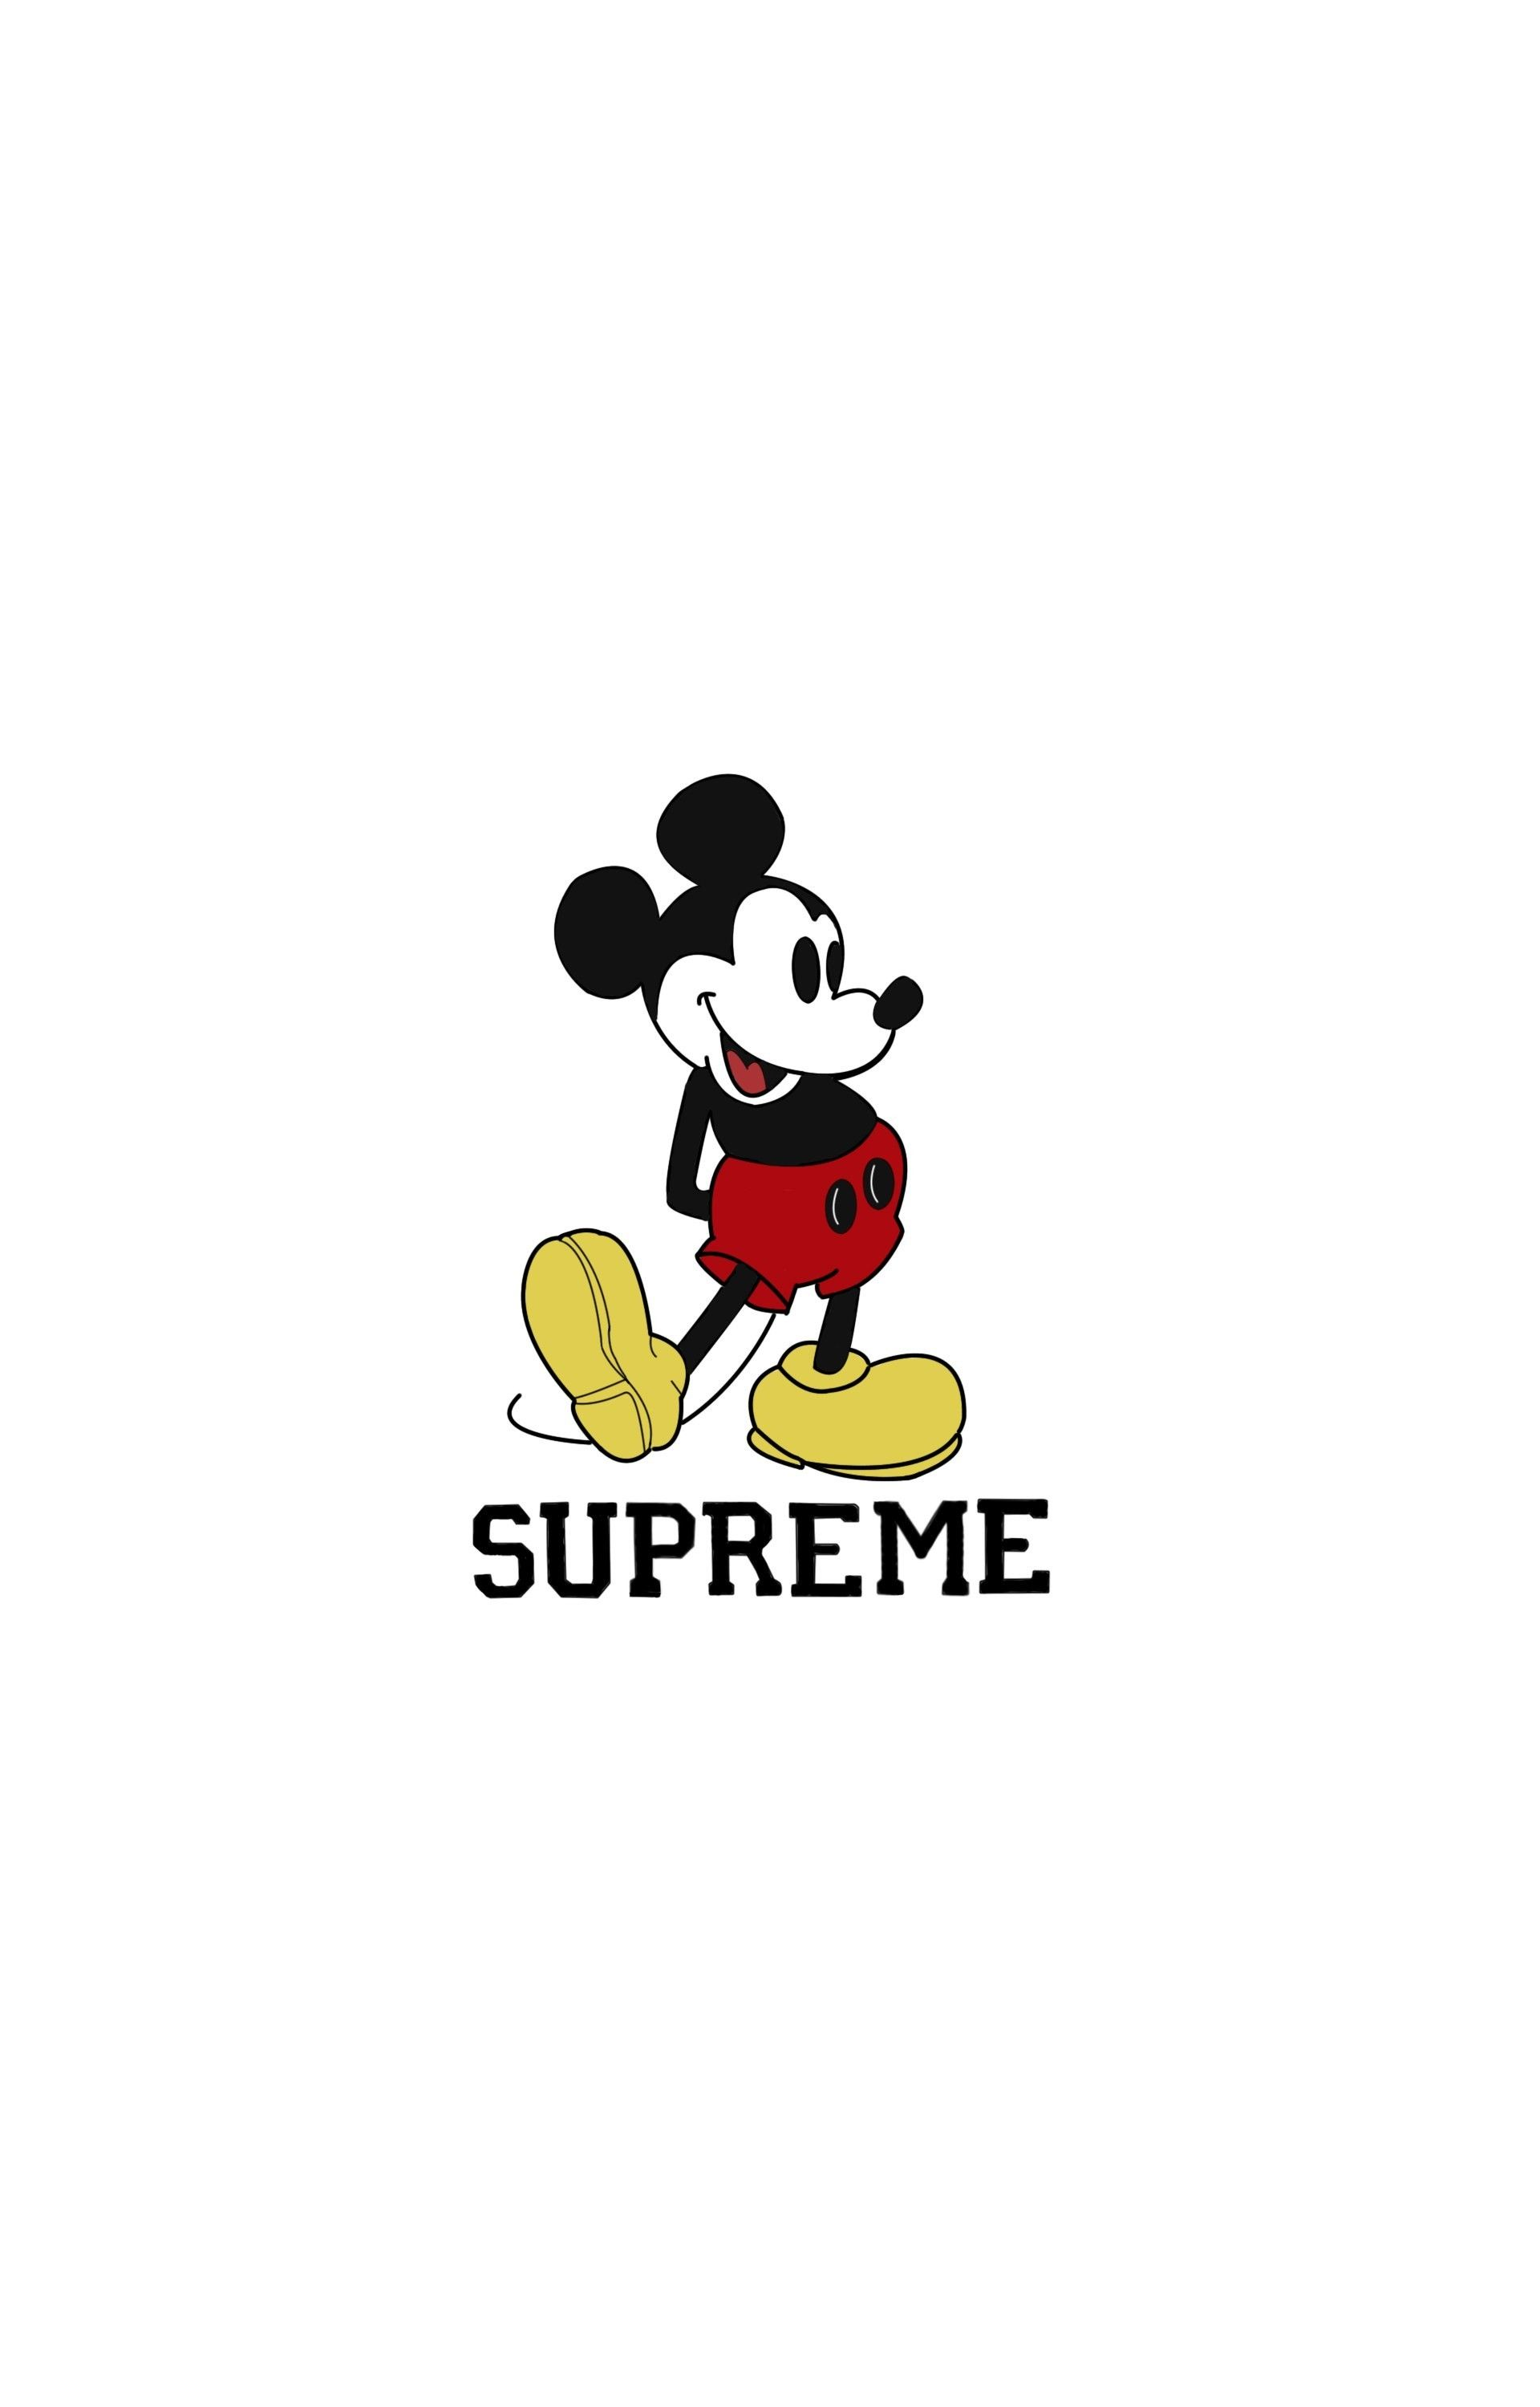 Res 1920x3000 Supreme Bape Camo Source A What I Wish Everyone Knew About Supreme Hd Wallp Mickey Mouse Wallpaper Supreme Wallpaper Supreme Iphone Wallpaper